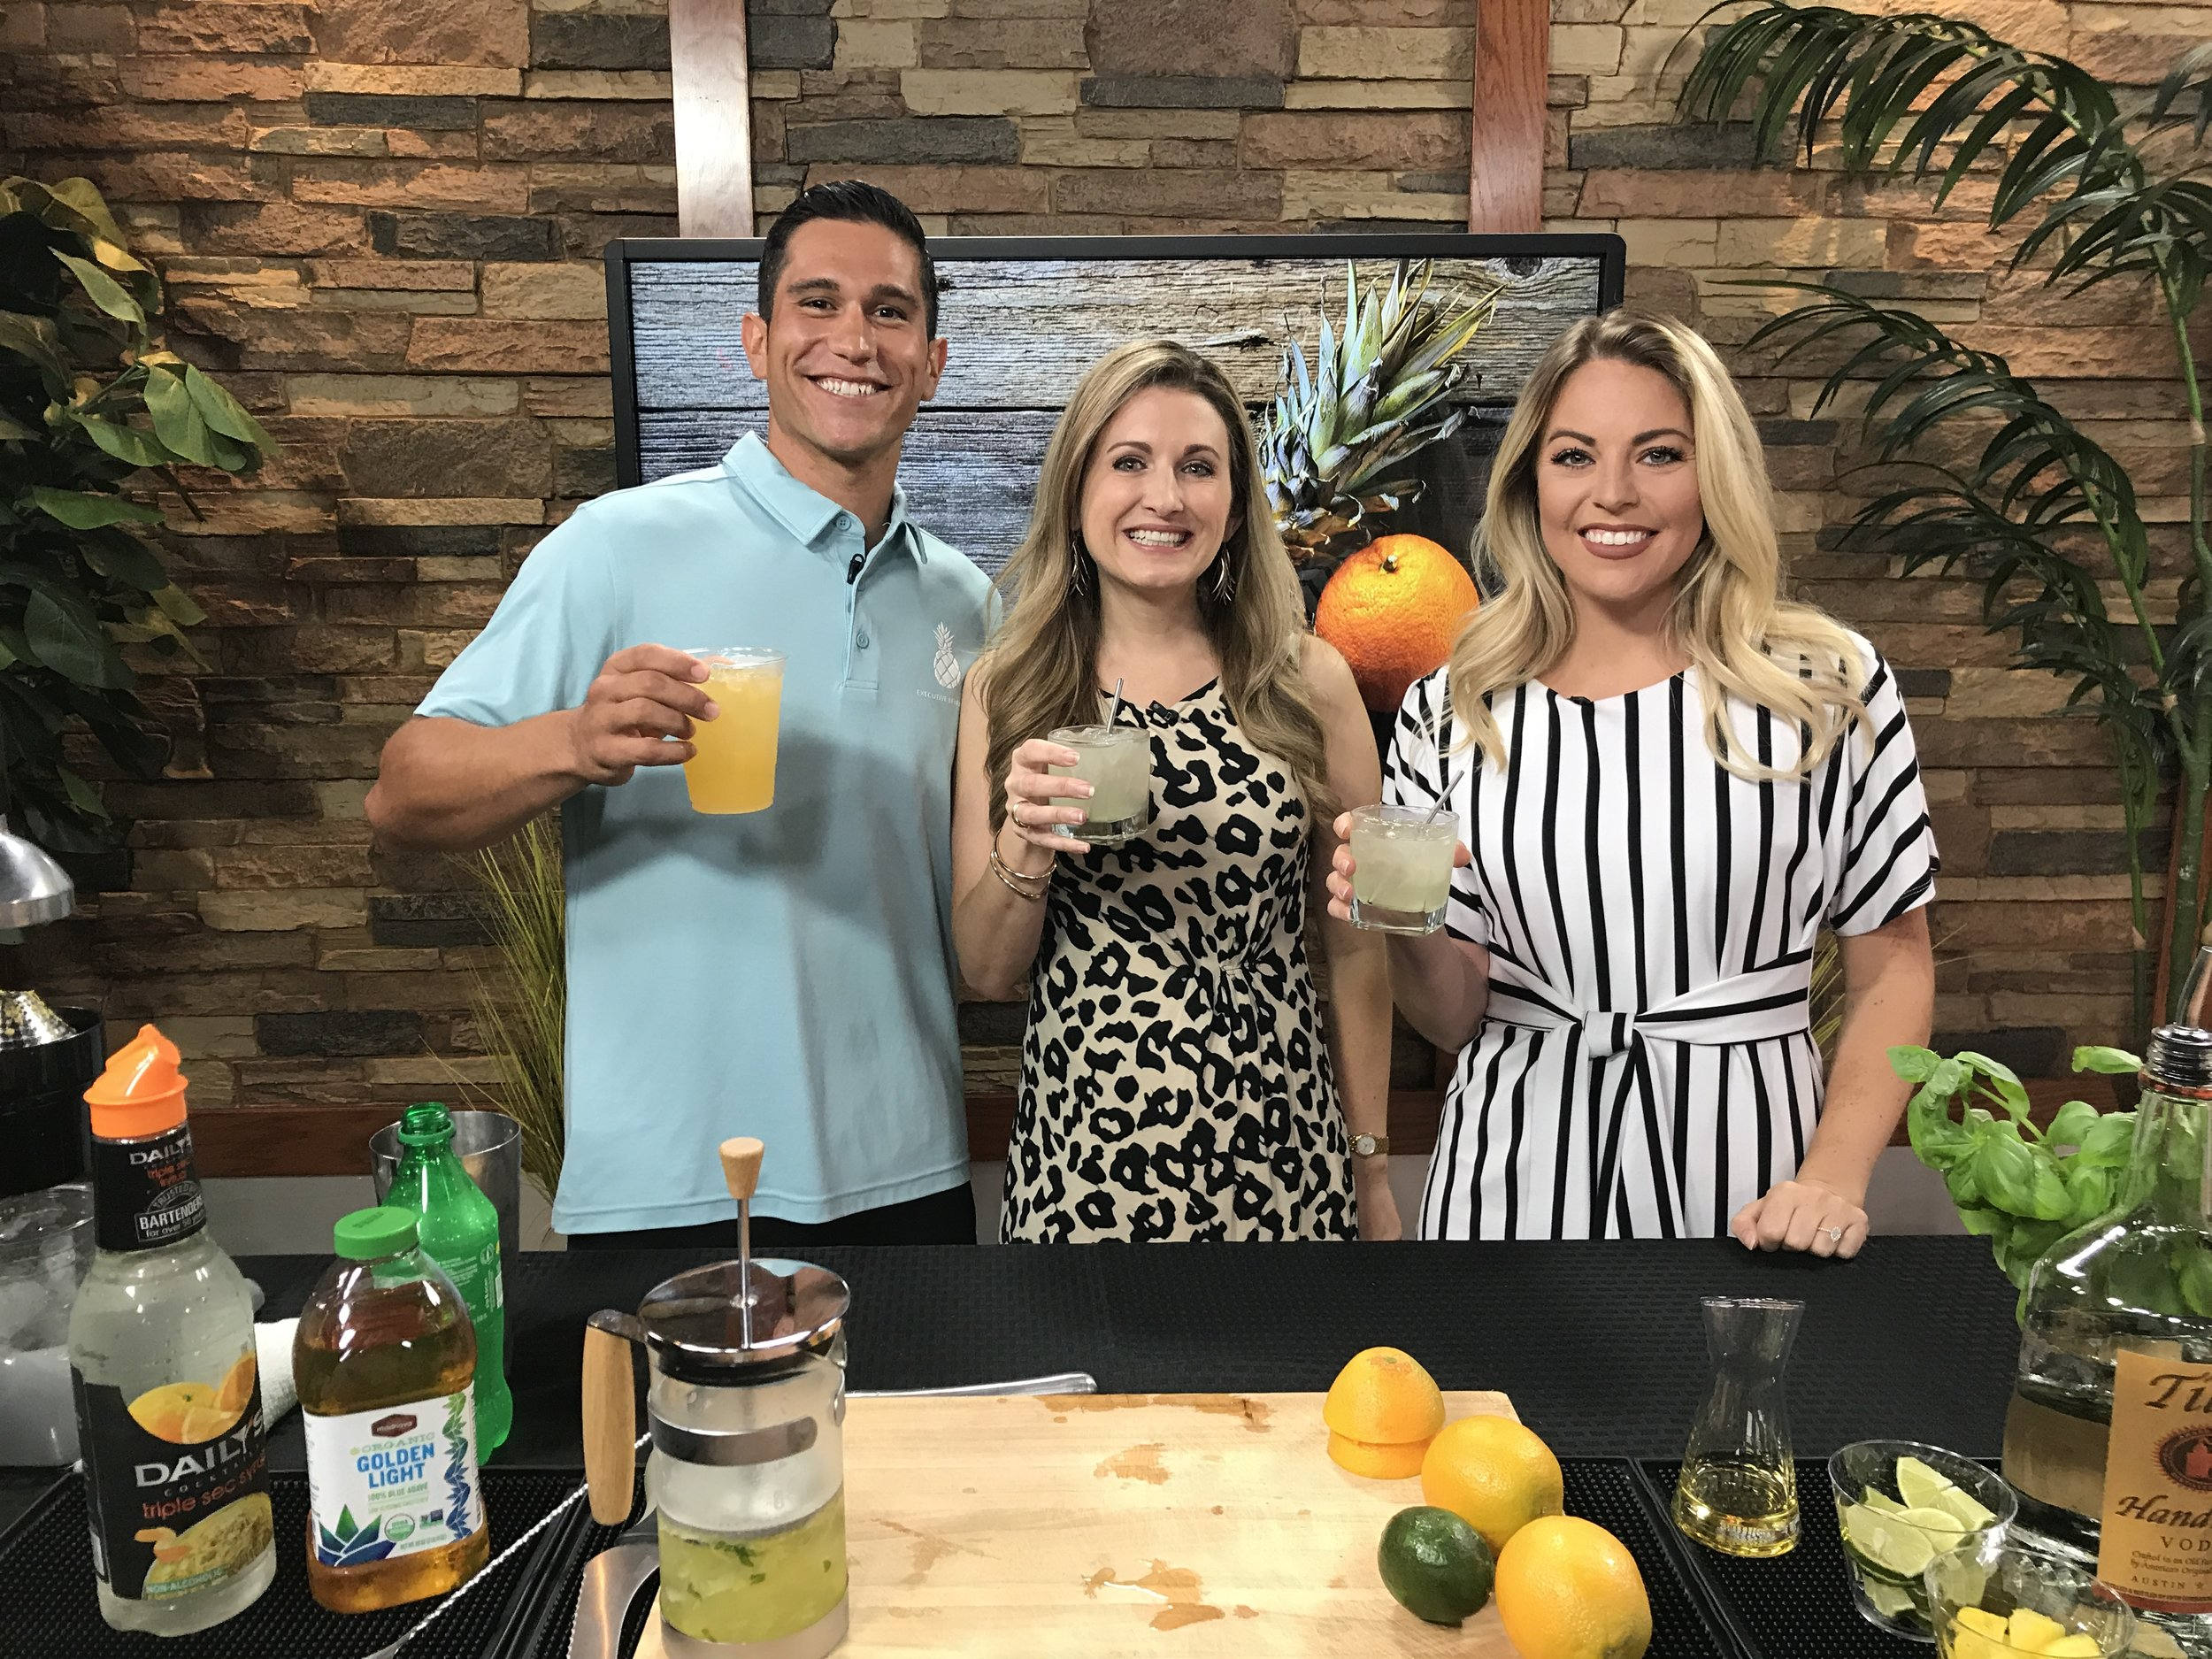 Getting a taste of summer with fresh pressed cocktails -